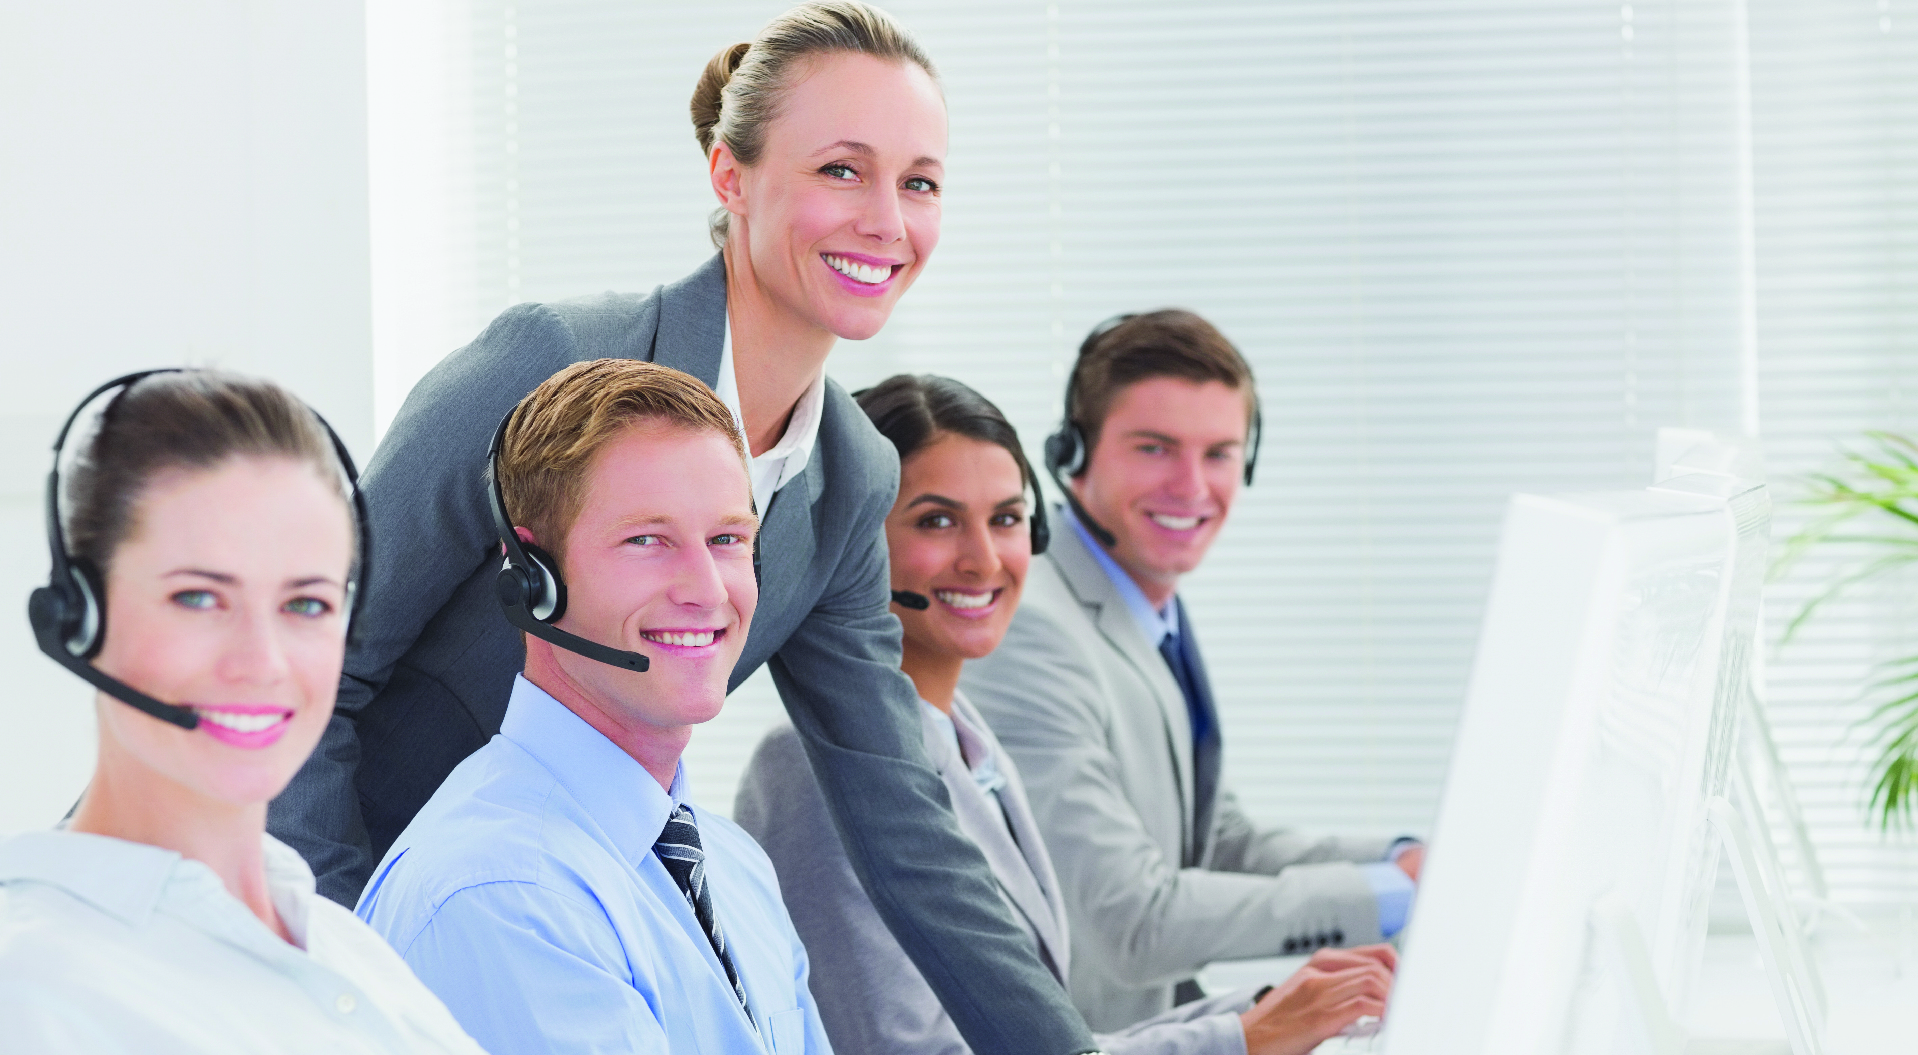 smiling people wearing call center headsets happy success story image